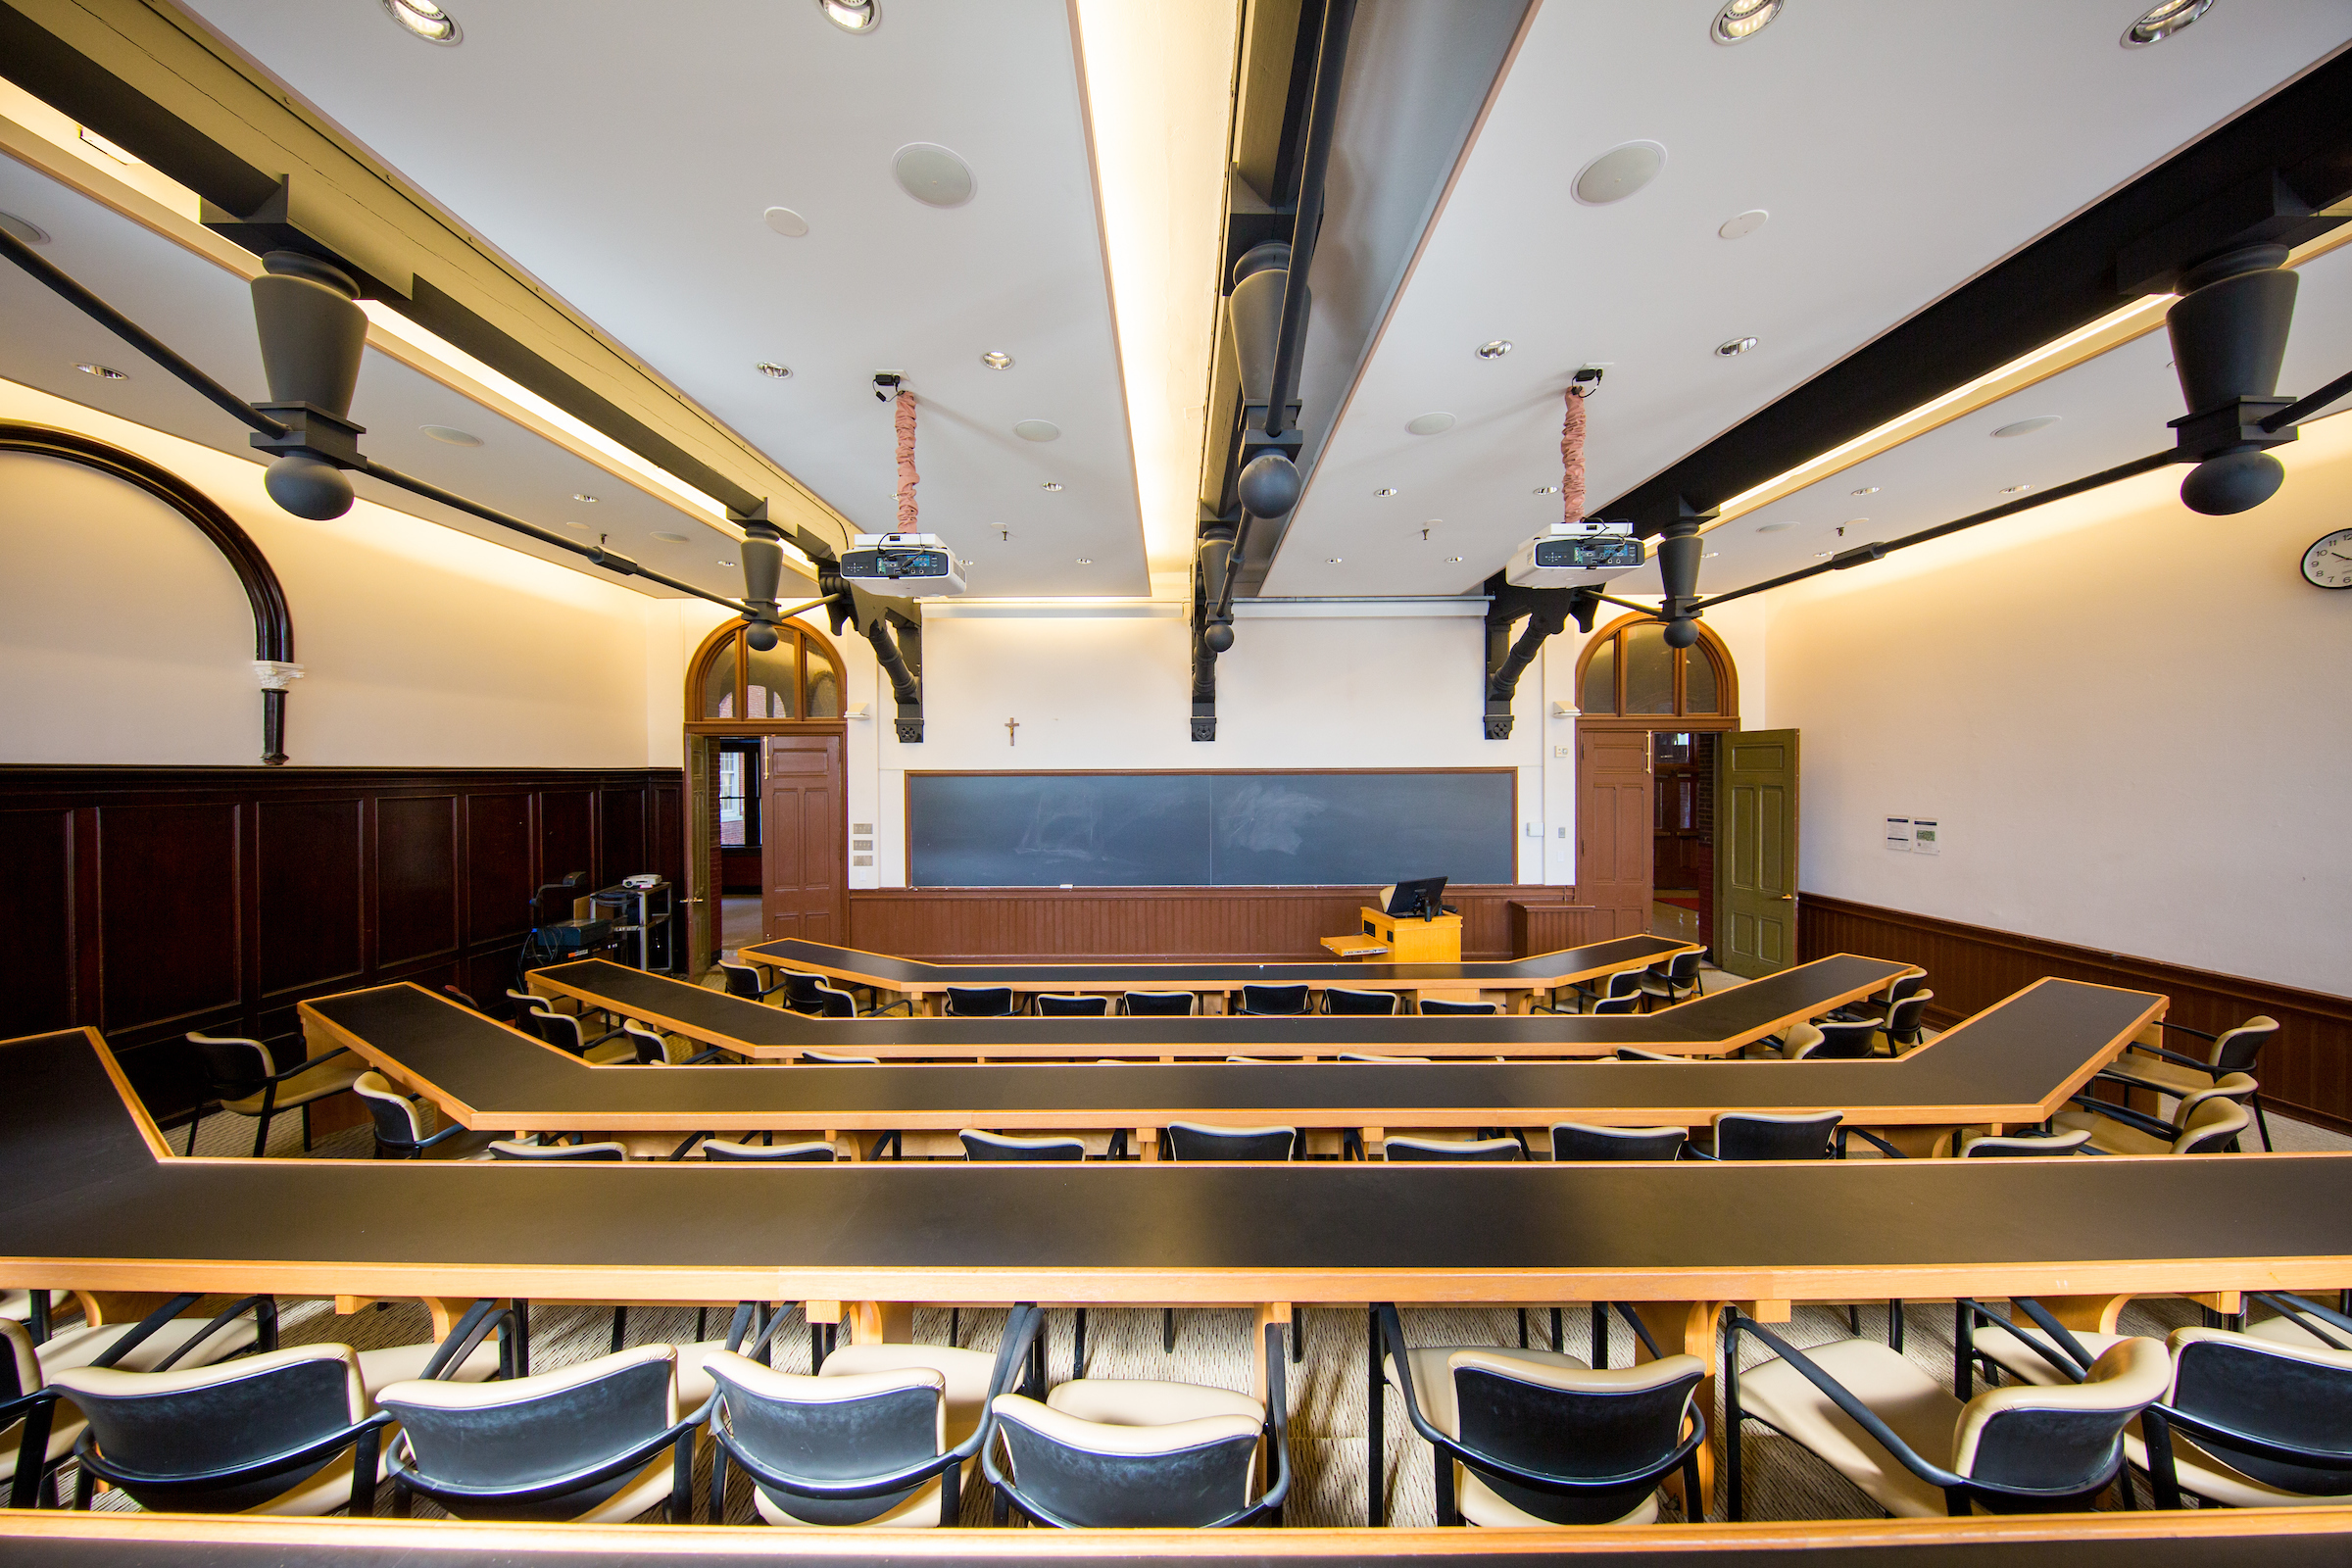 Empty Healy Hall classroom, blackboard in the front of lecture hall